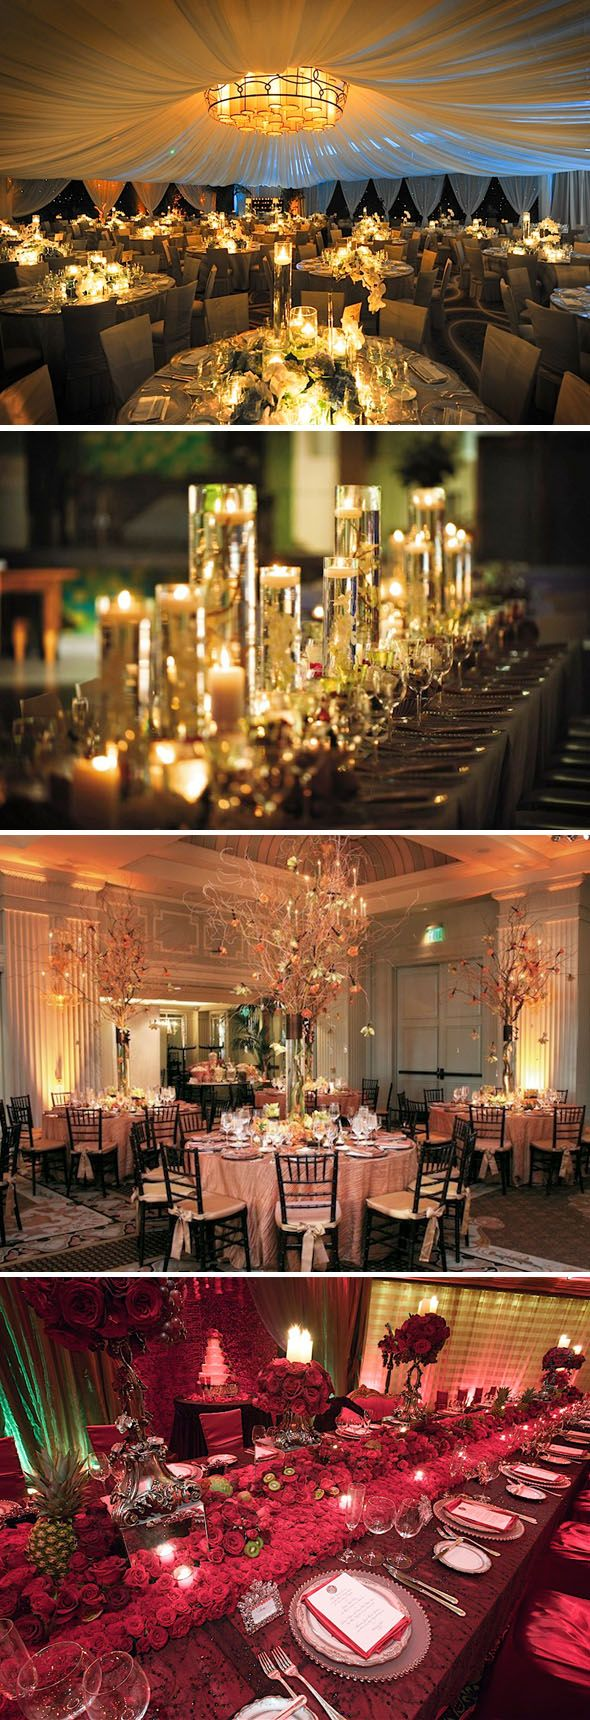 Candlelight & Centerpieces #Luxury #Wedding #Centerpieces